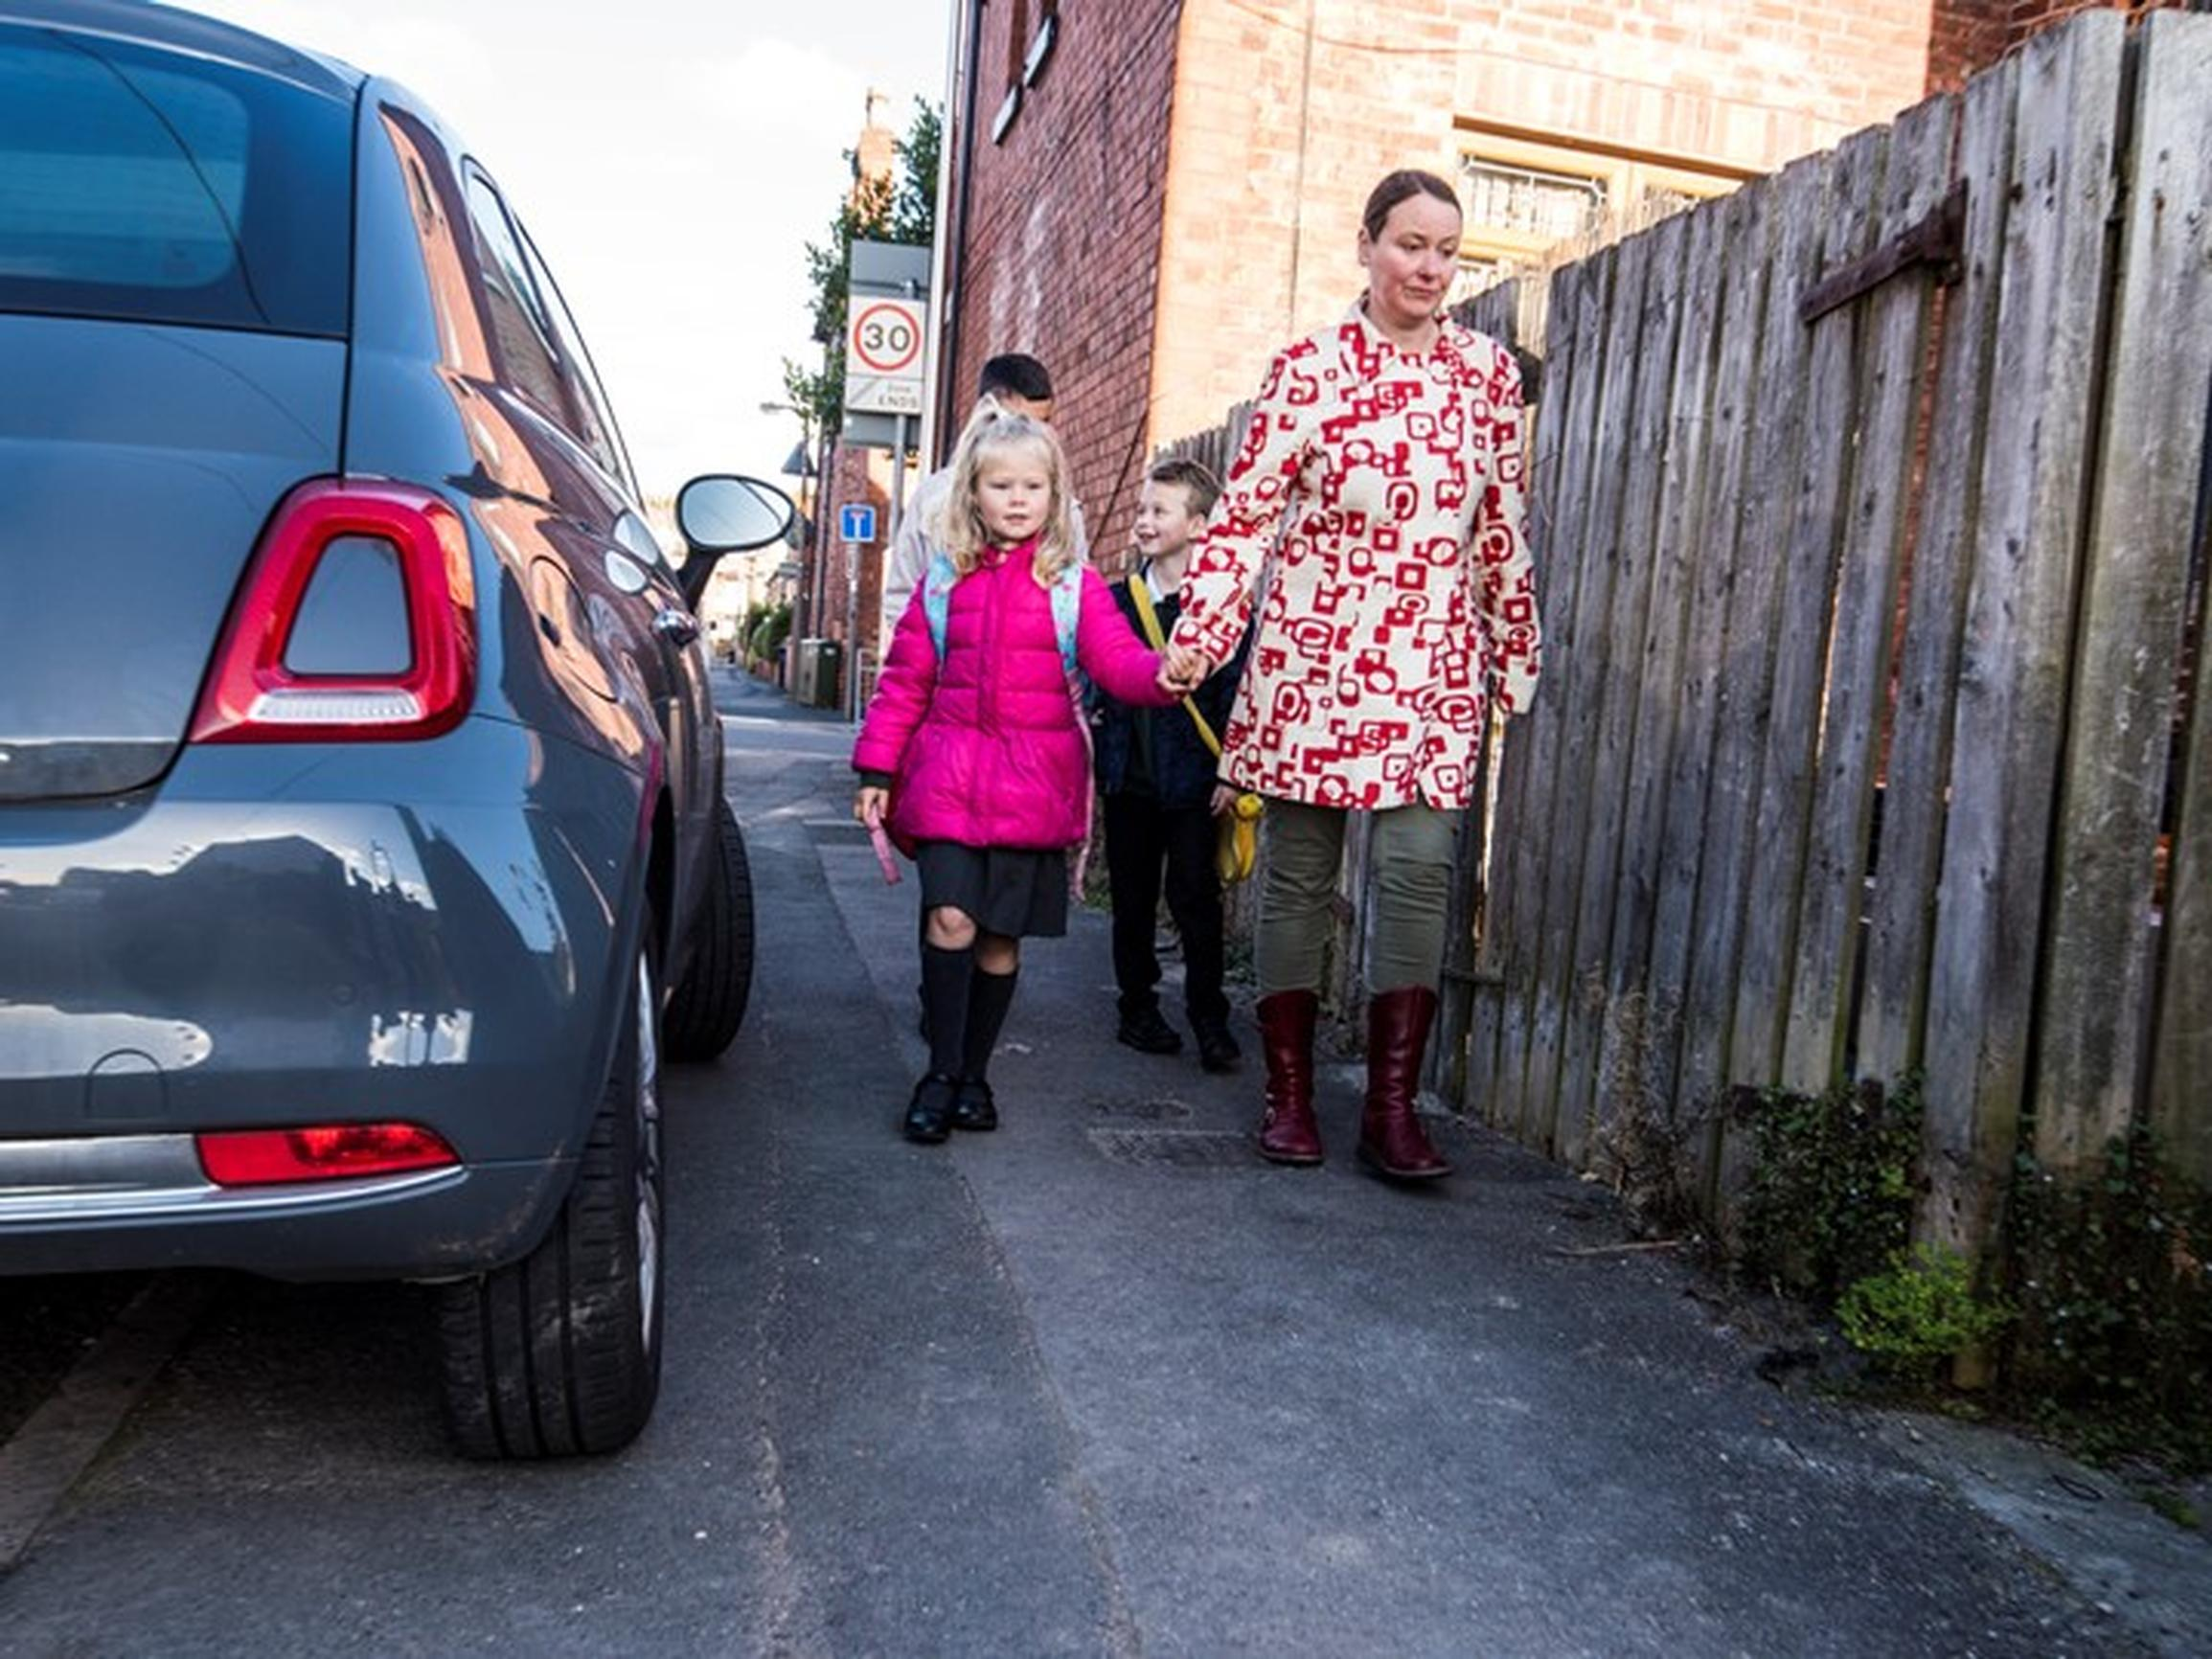 Pavement parking poses a particular risk to people living with sight loss, those with mobility issues, children and parent with buggies